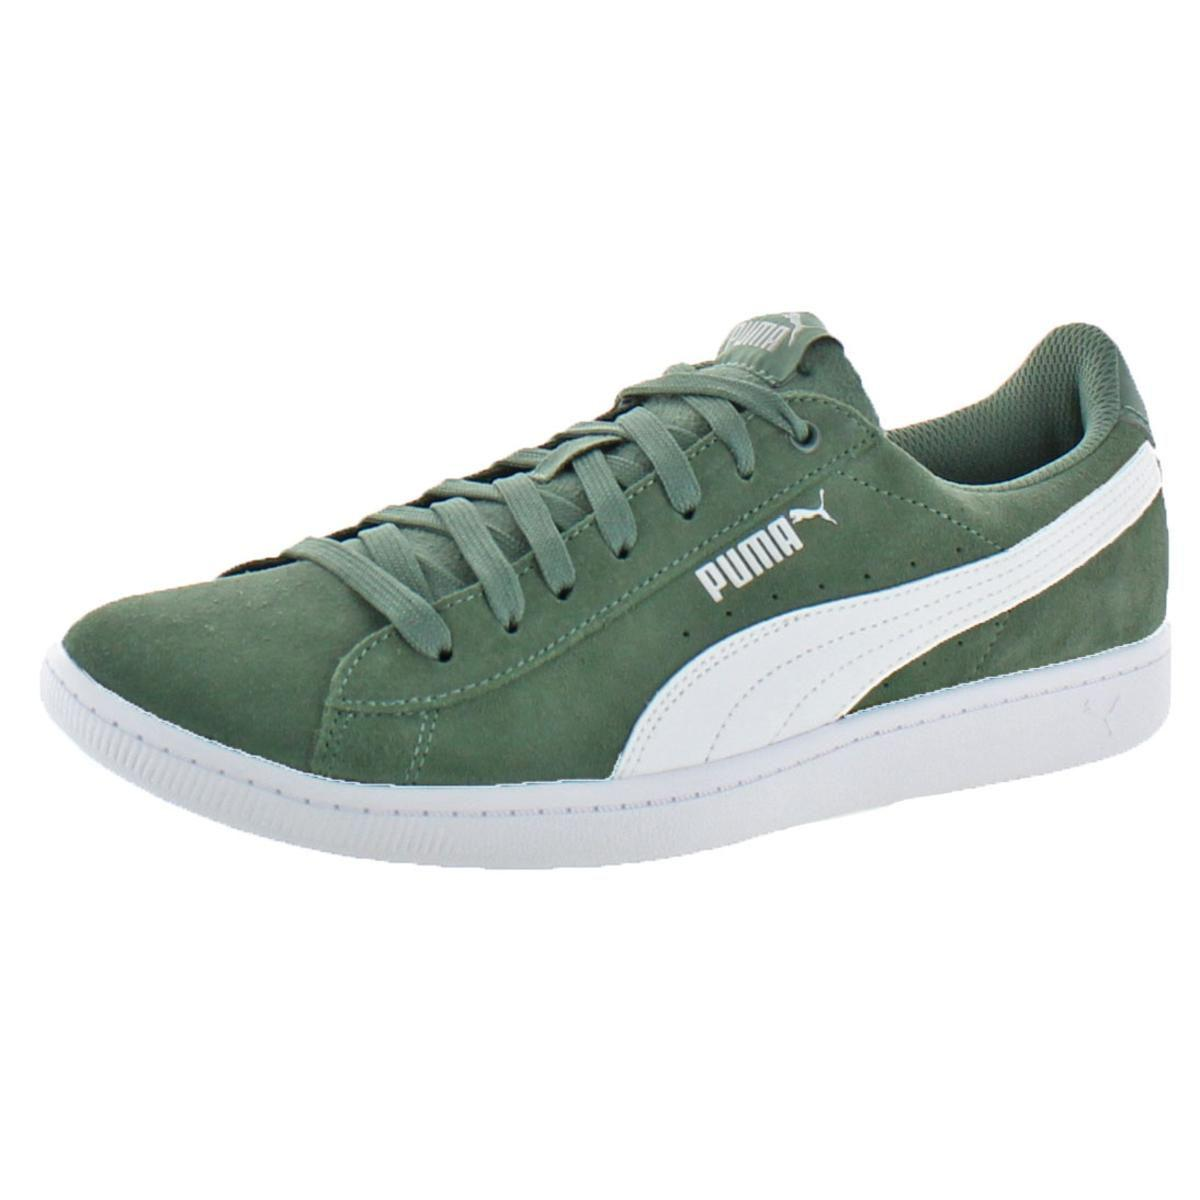 Lyst Puma Vikky Low top Sneakers in Green